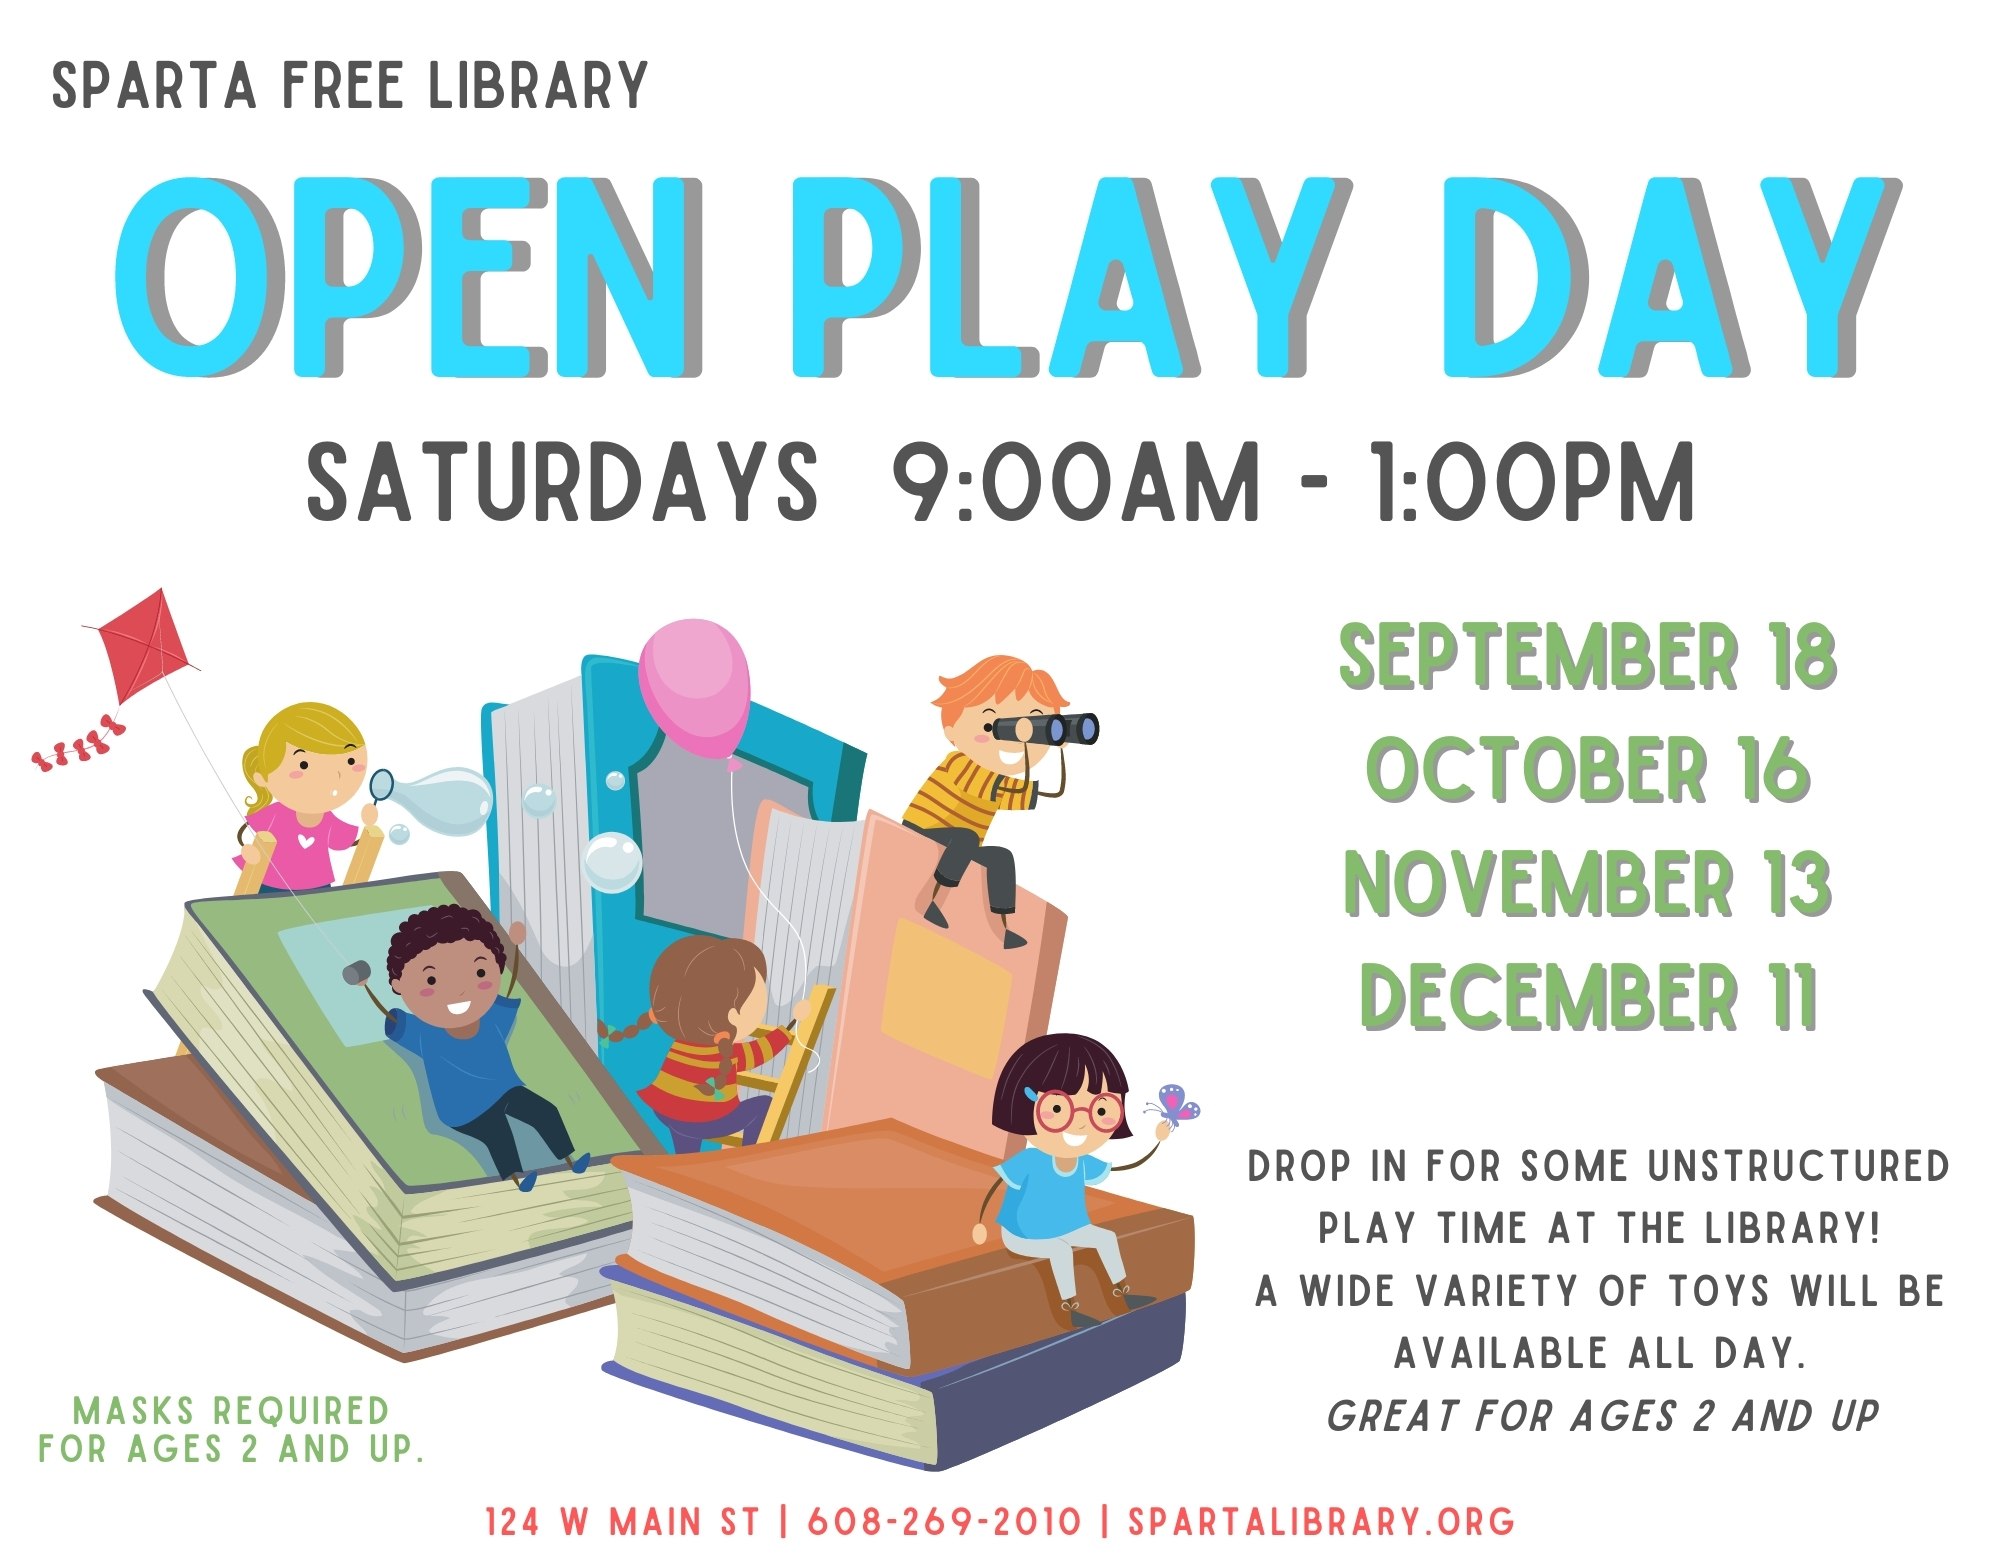 Open Play Day